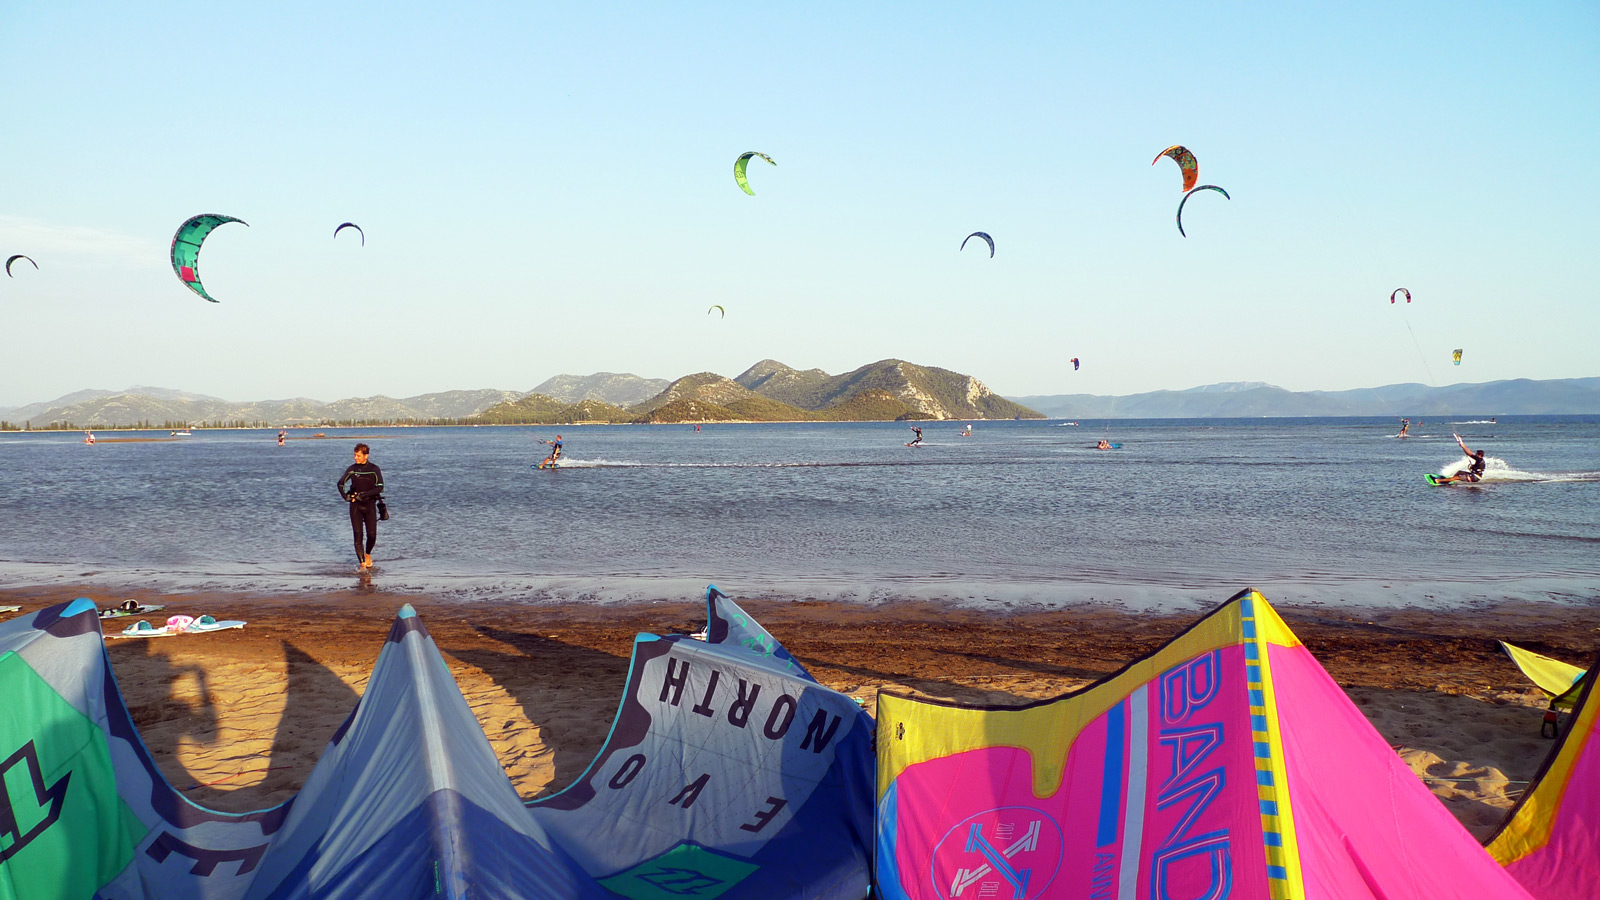 The kite spot at Kiteboarding Komin, Croatia